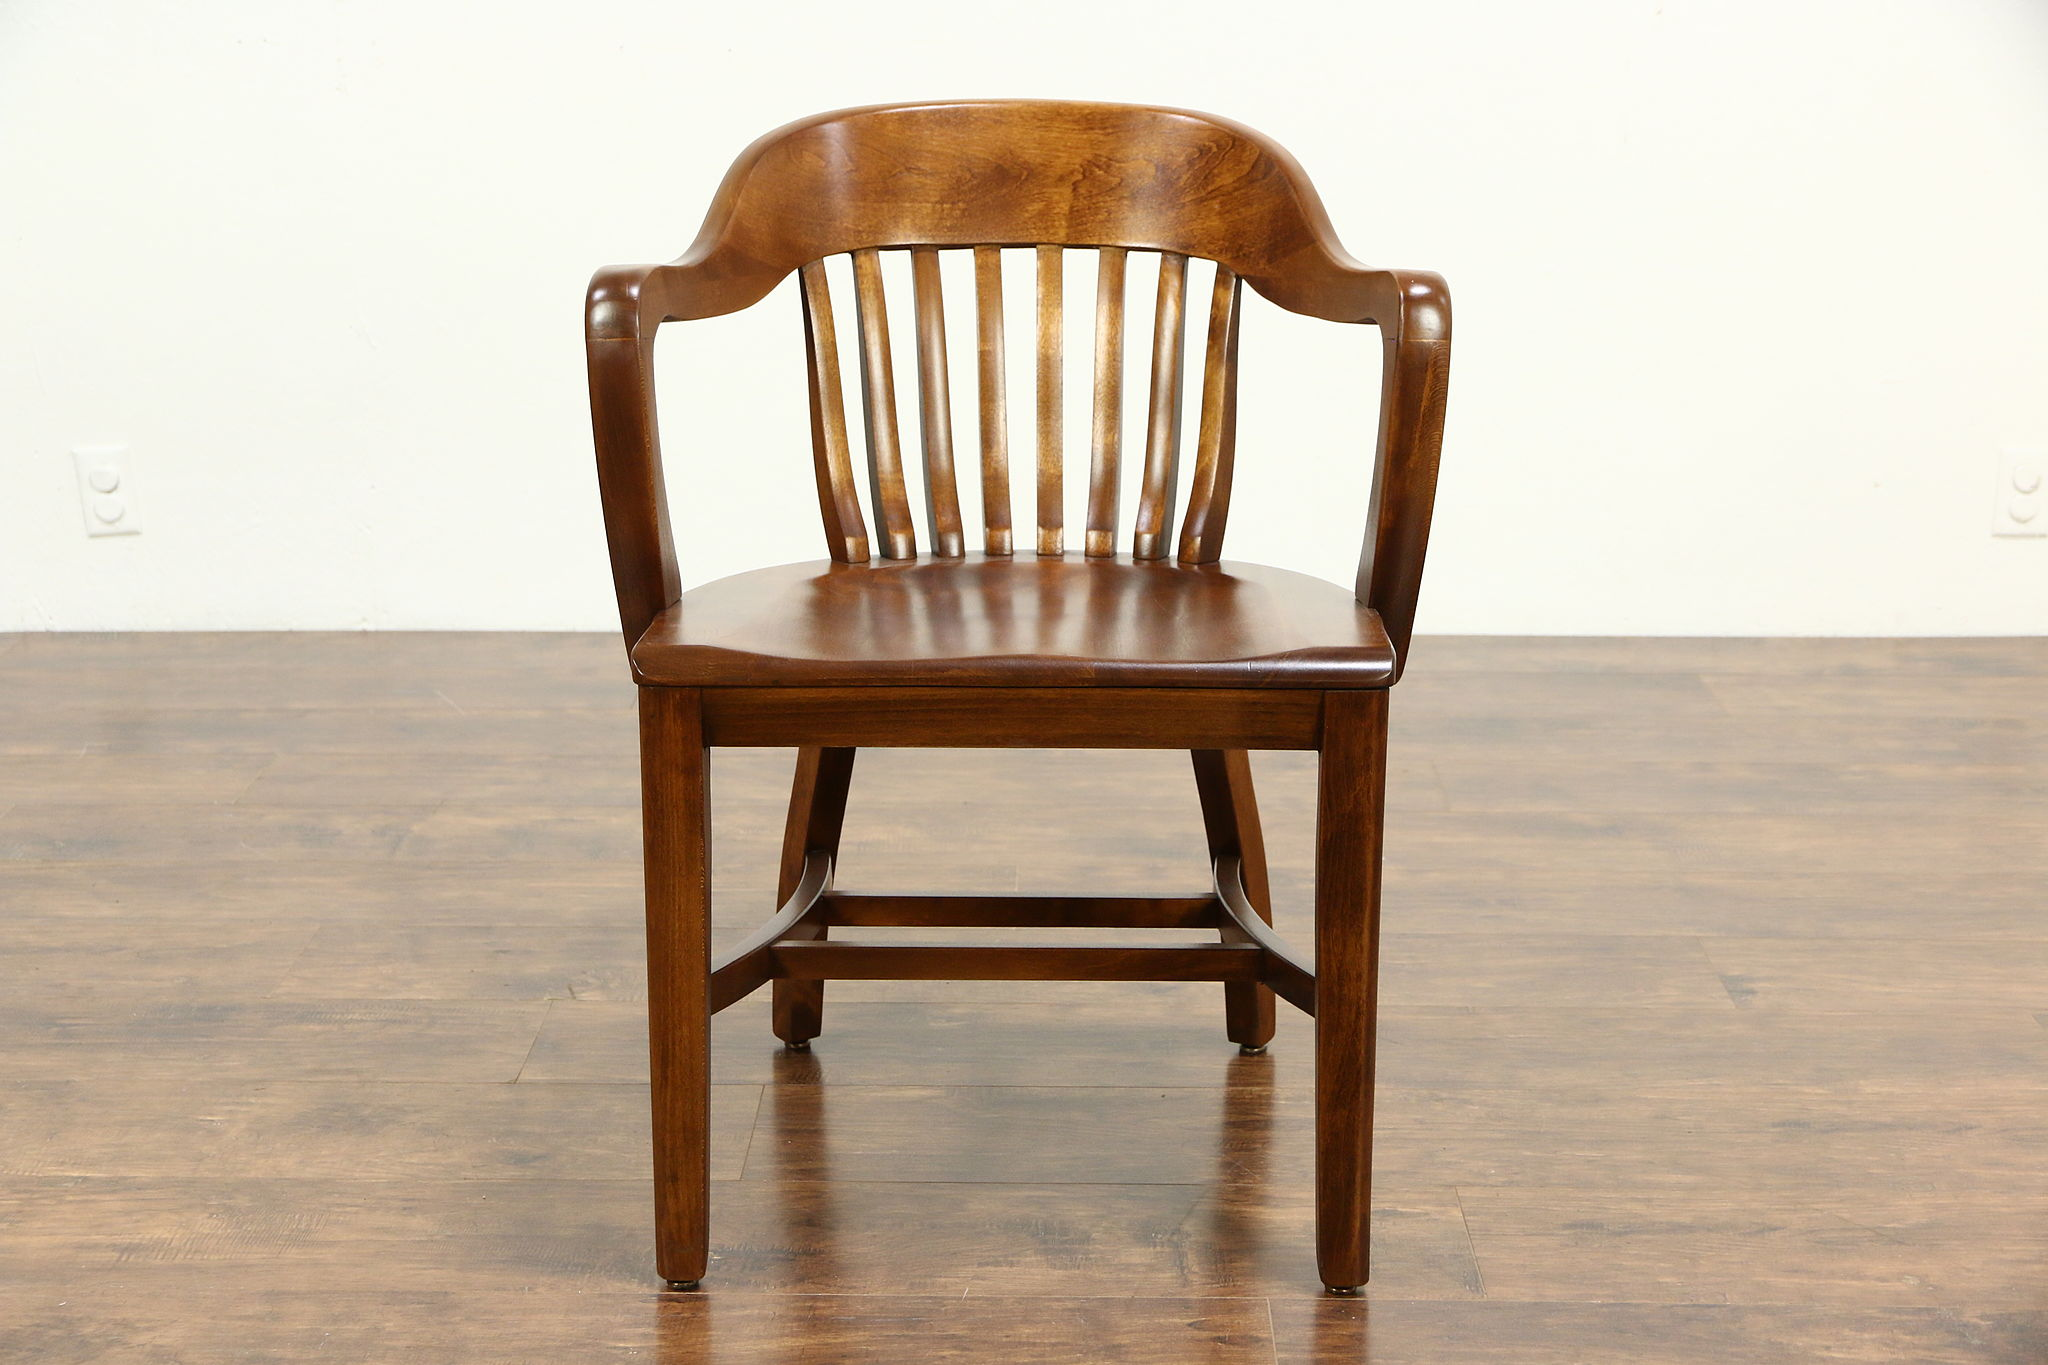 bedroom chair on ebay most comfortable chairs sold - desk, office or library with arms, 1940 vintage harp gallery